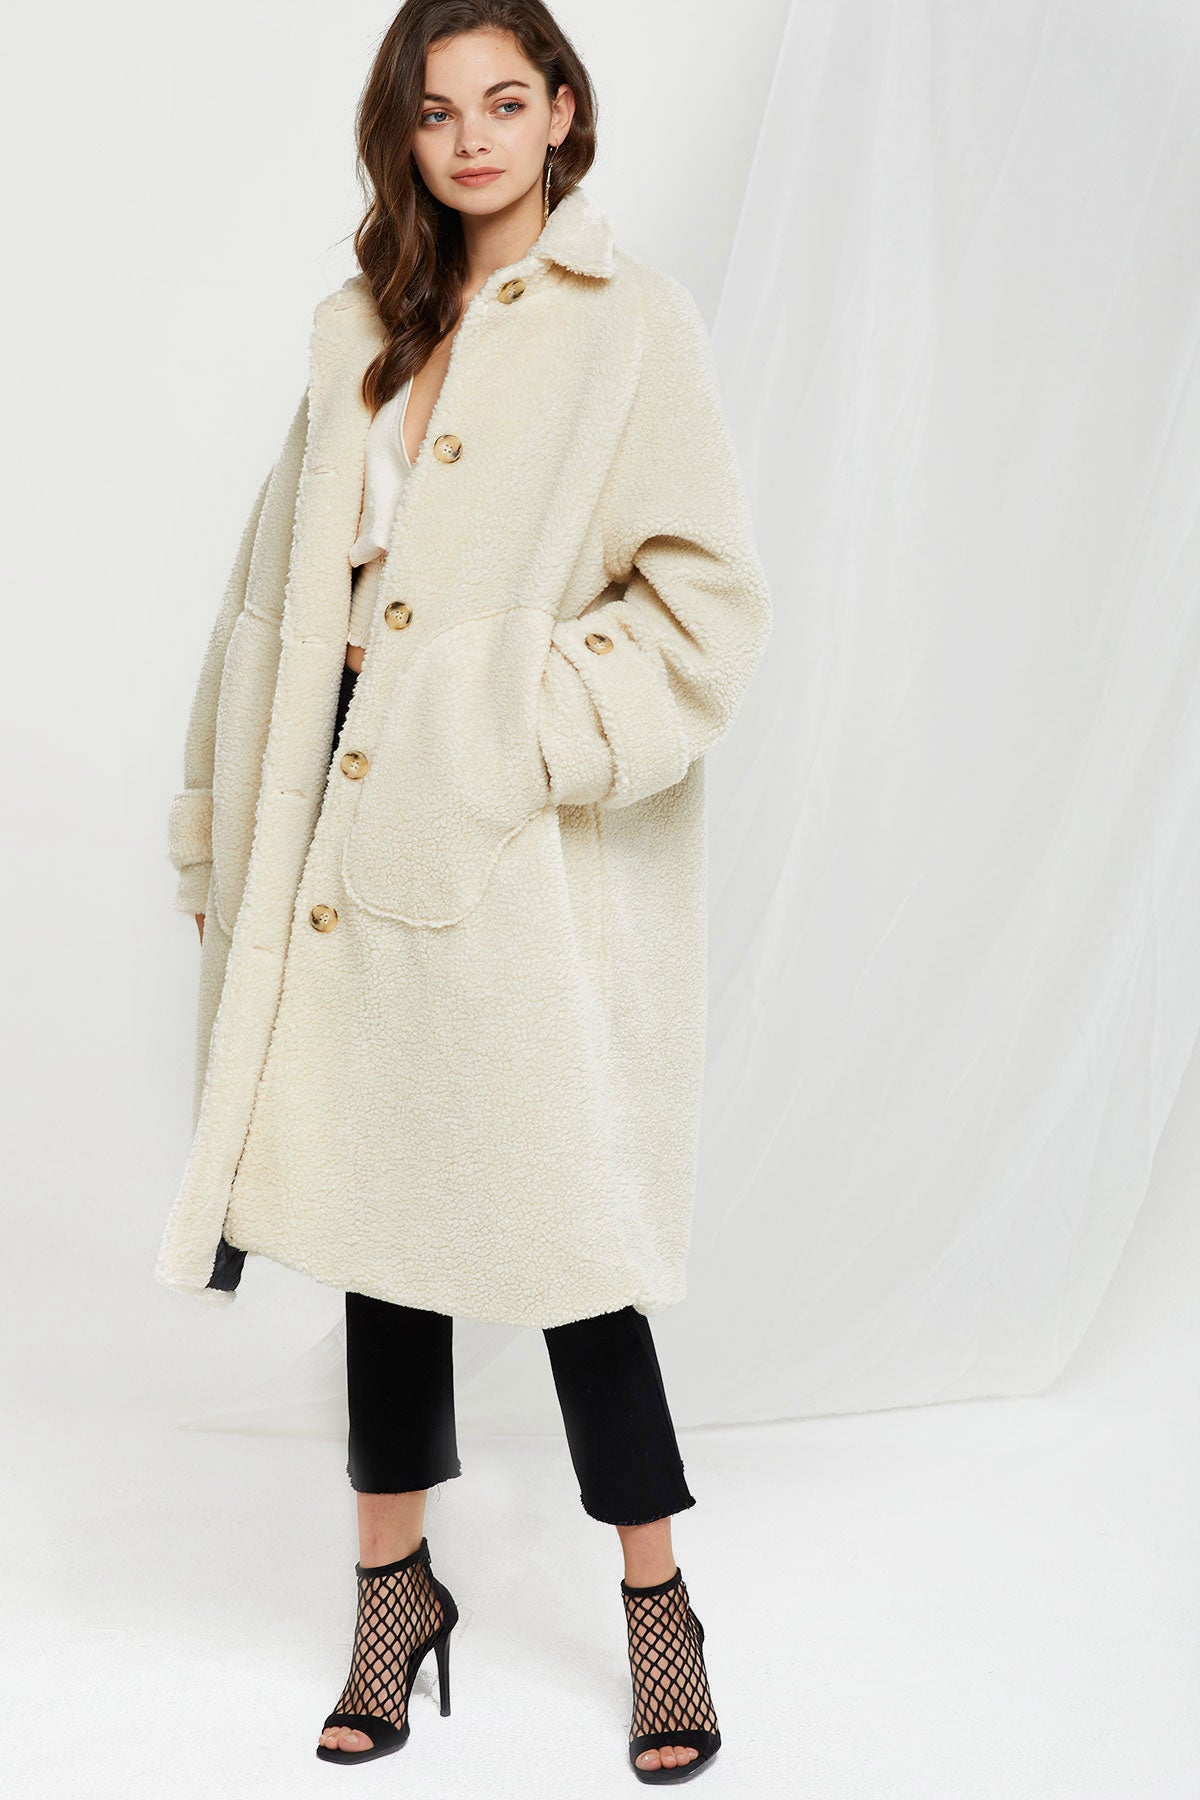 Olivia Boucle Rounded Coat (Pre-Order)